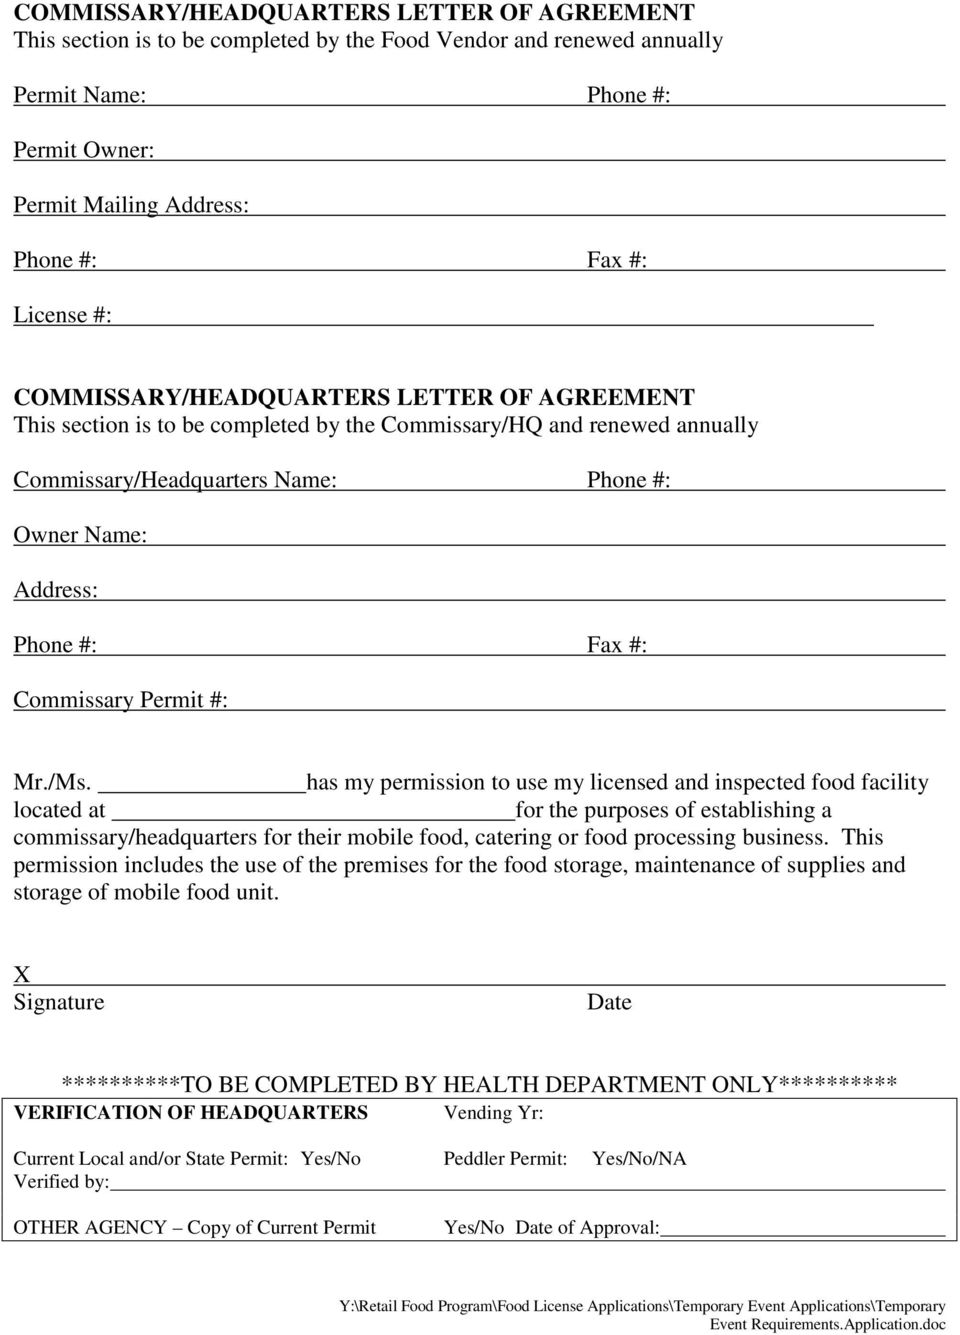 Commissary Permit #: Mr./Ms.